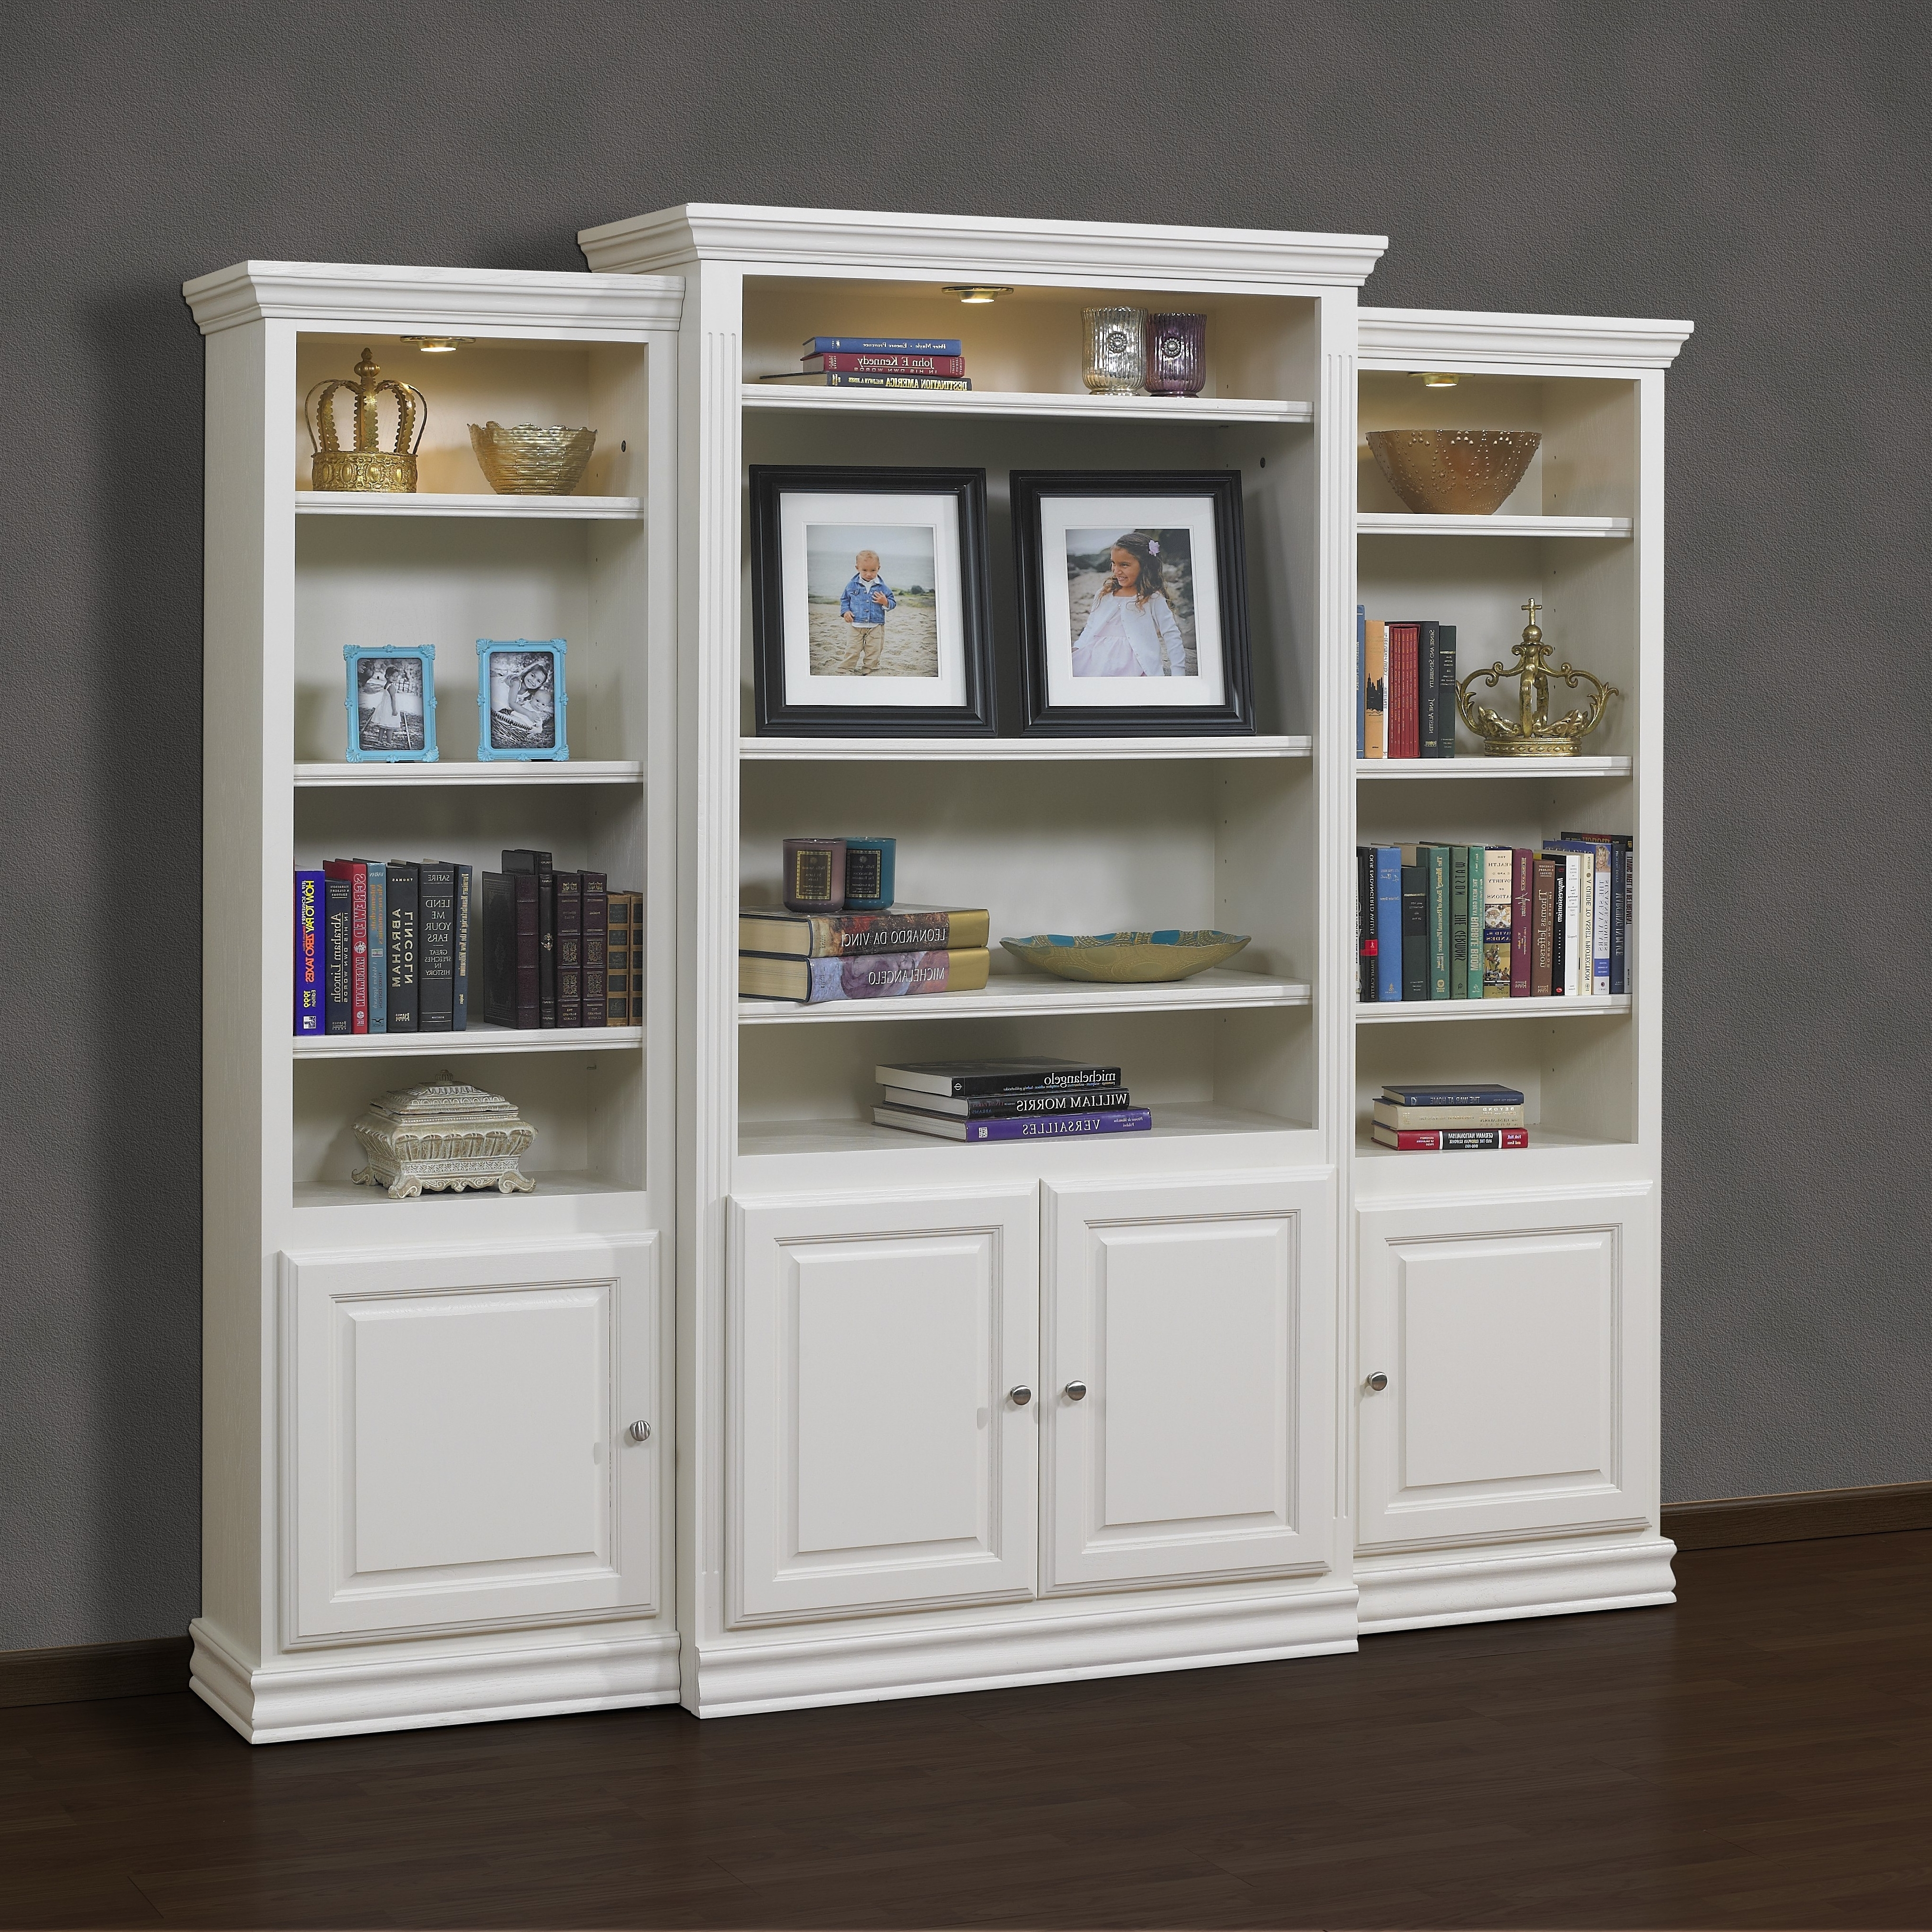 Bookcases With Cupboard Throughout 2017 Bookshelf Cabinet Vibrant Idea (View 5 of 15)